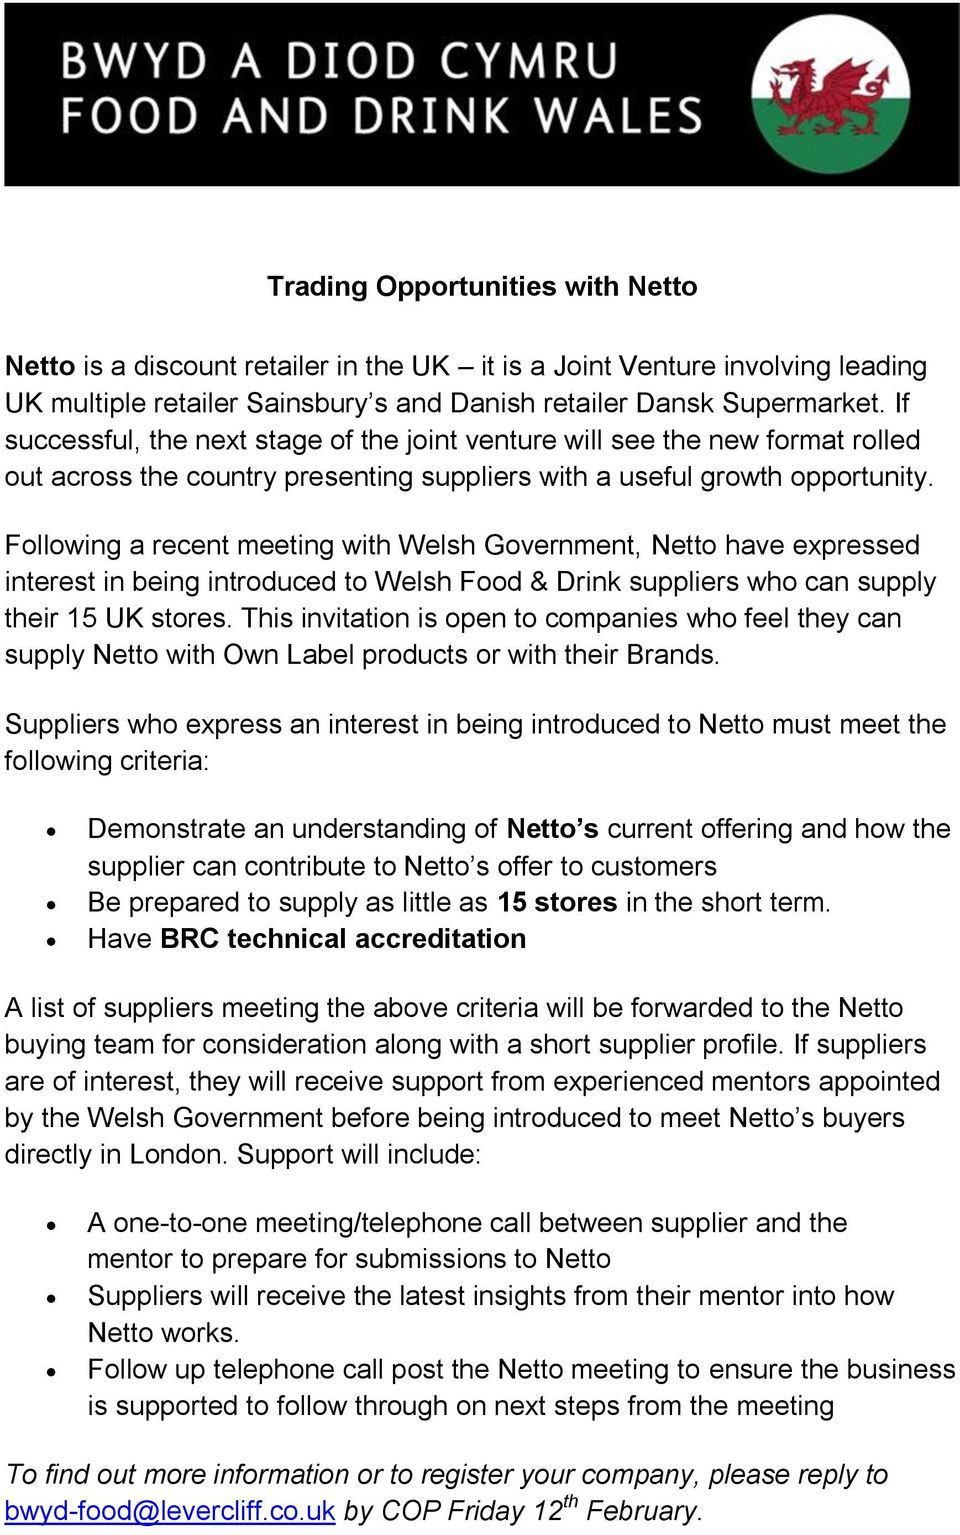 Following a recent meeting with Welsh Government, Netto have expressed interest in being introduced to Welsh Food & Drink suppliers who can supply their 15 UK stores.